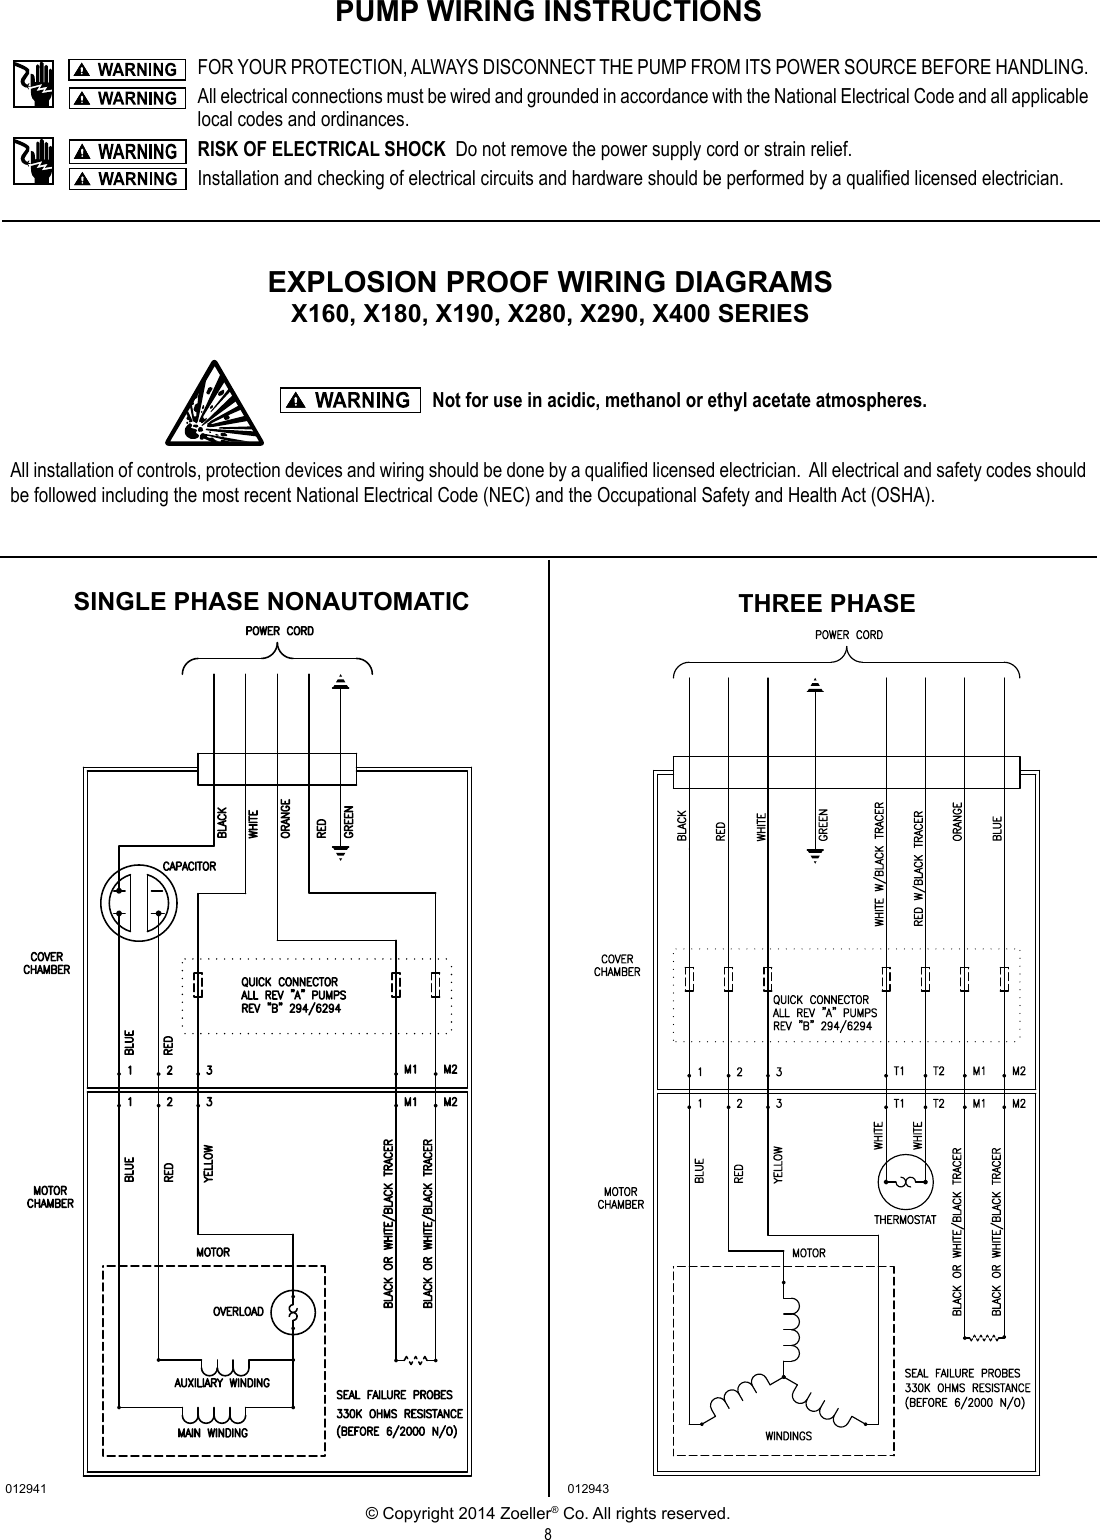 Zoeller Pump Wiring Diagrams Schematics Best Secret Diagram Sump Switch Control Panel Site Septic Repair